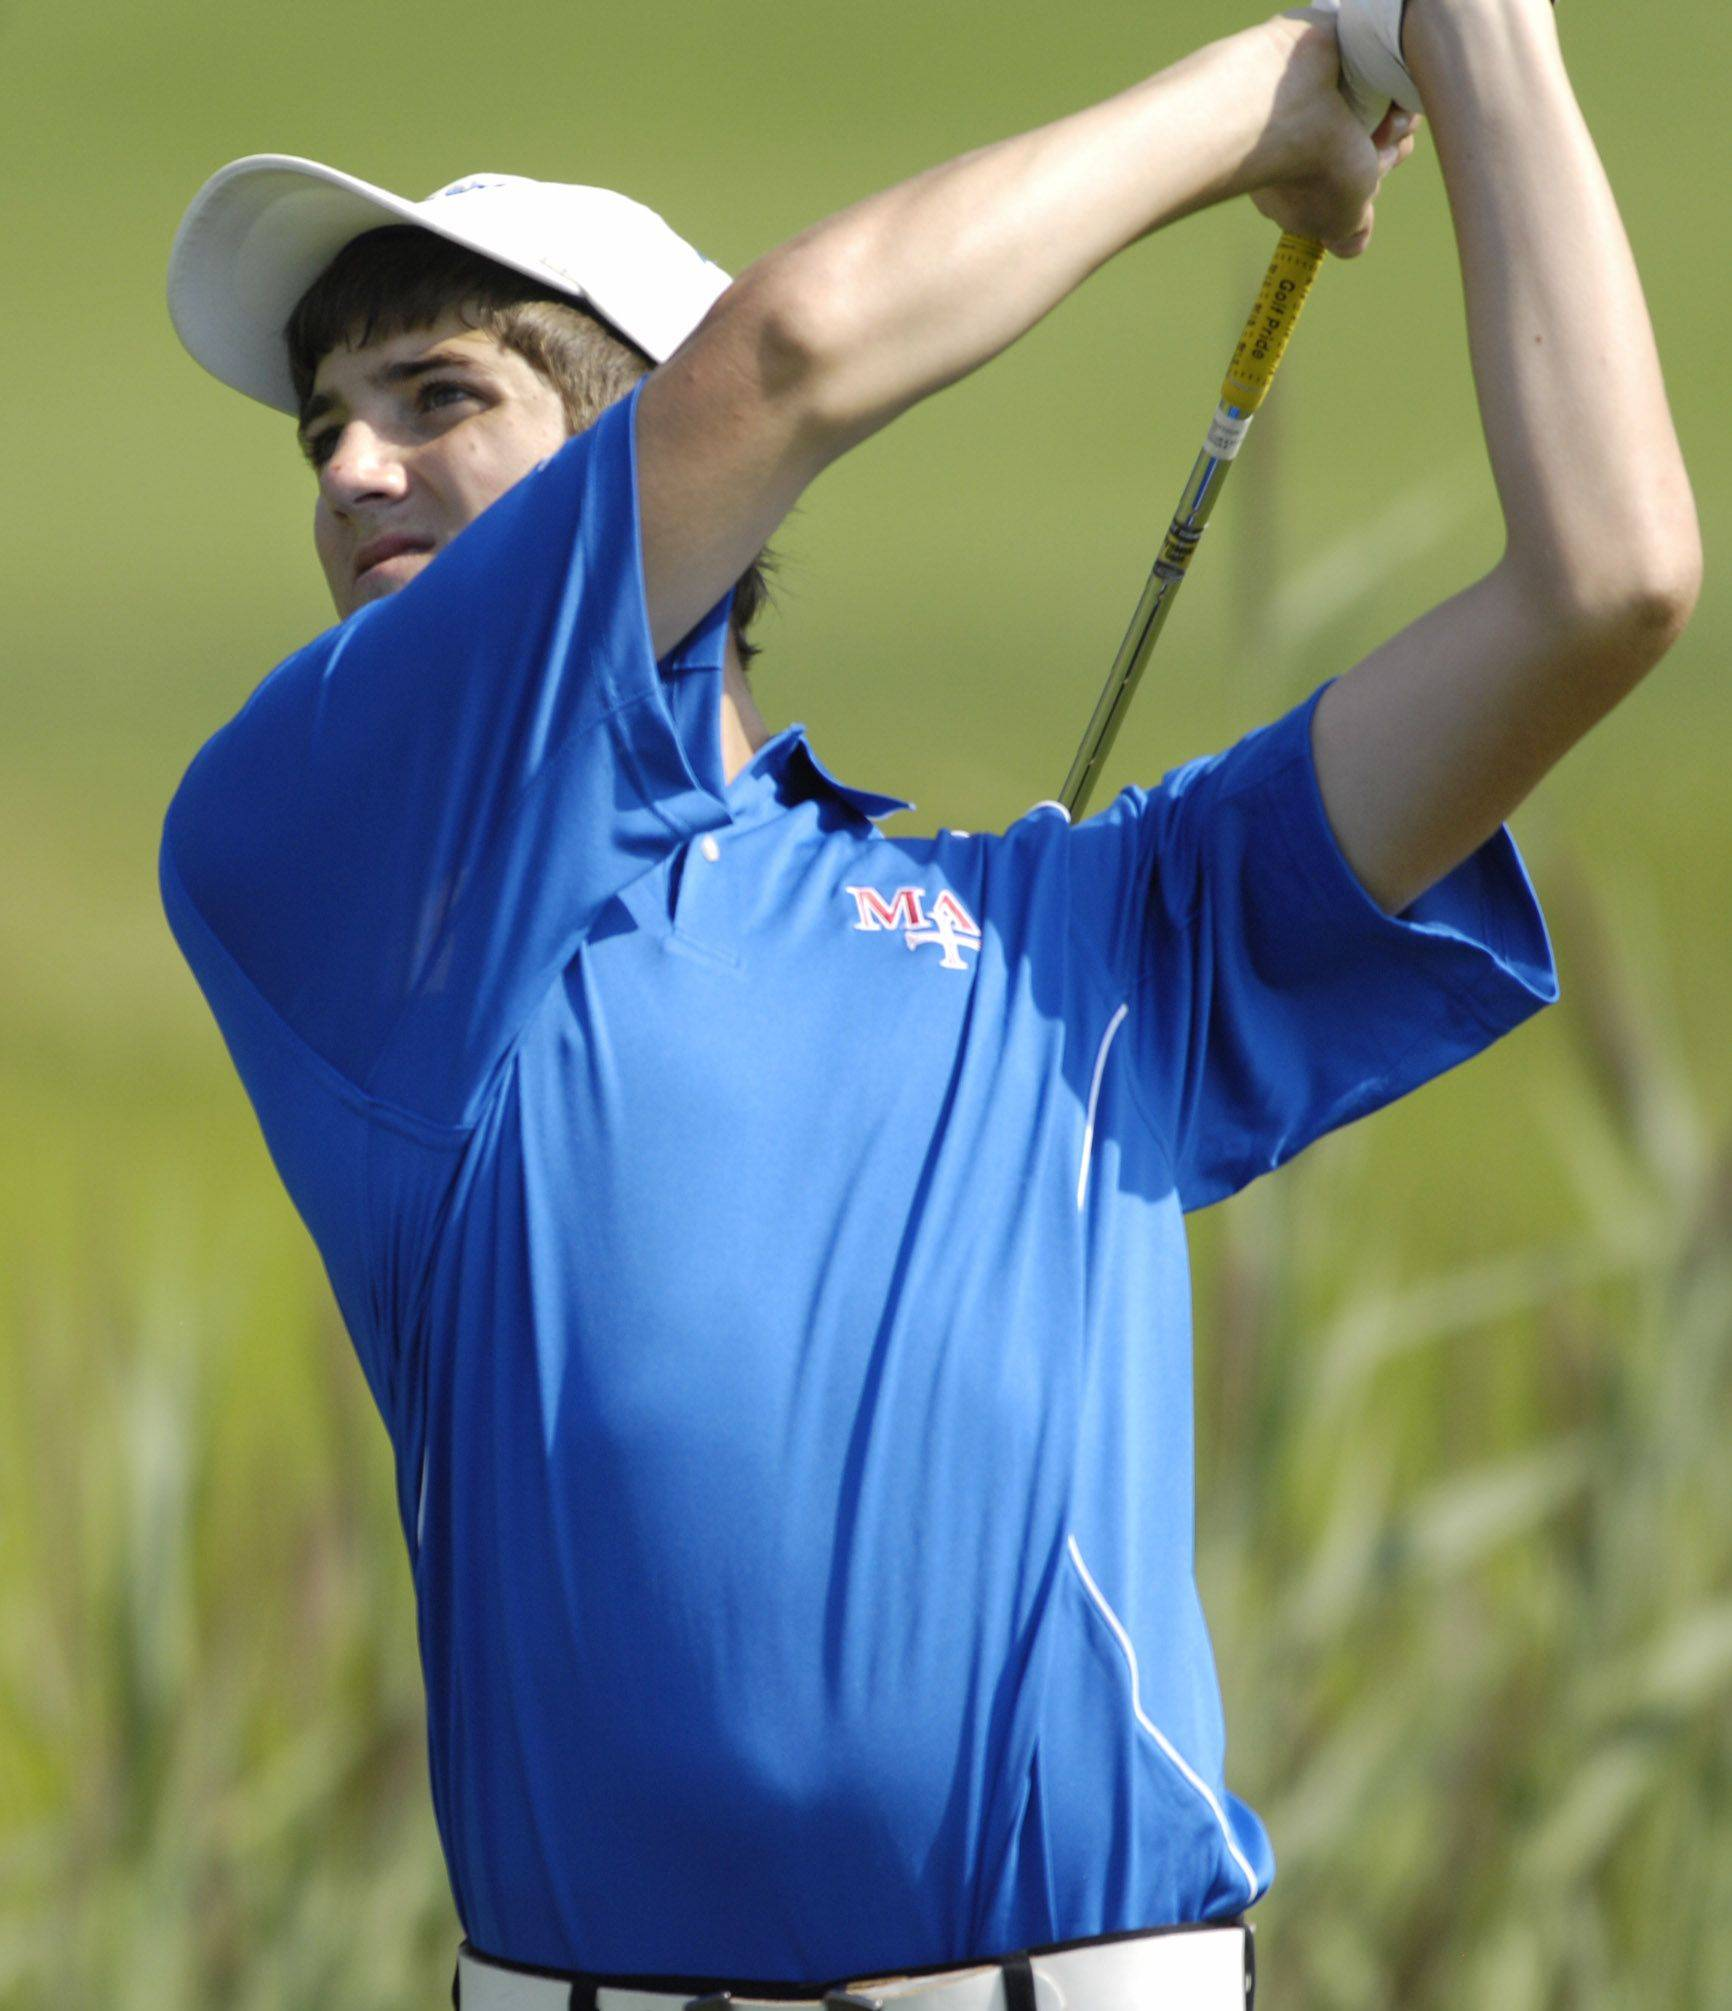 Marmion Academy�s Zach Wytych during the Larkin Boys golf invitational at the Highlands Golf Club in Elgin Wednesday.